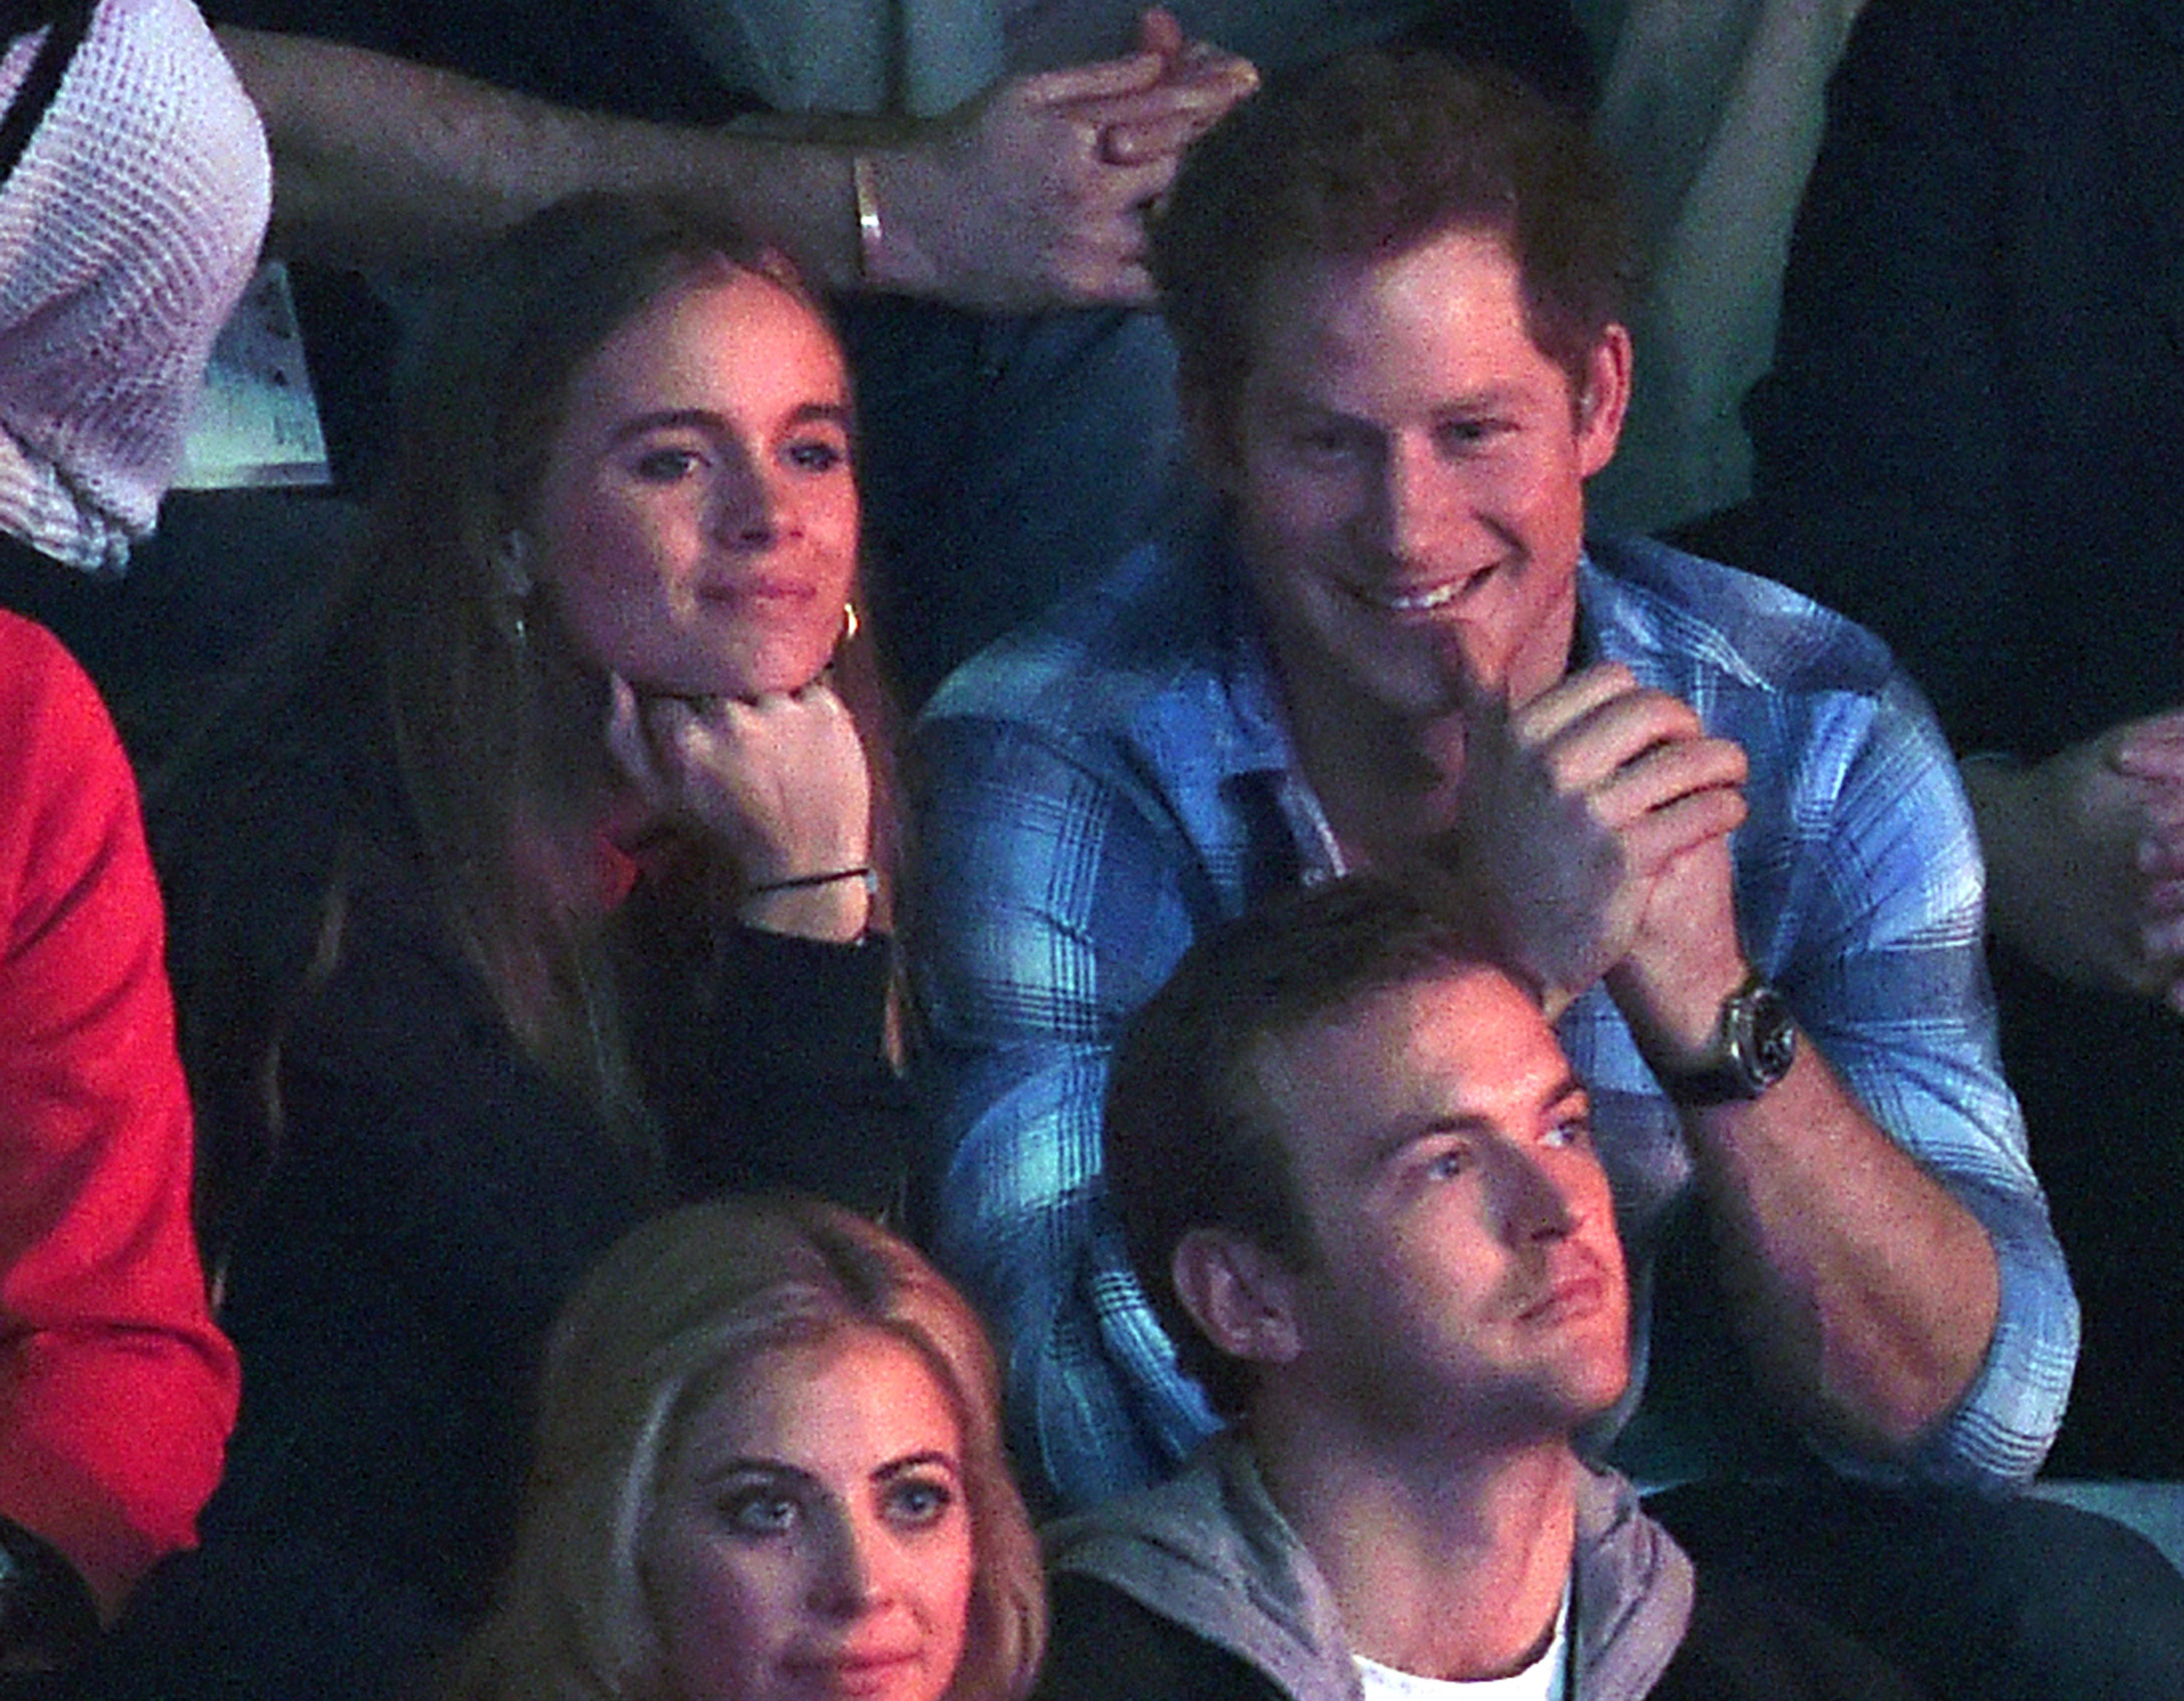 Prince Harry's Ex Cressida Bonas Is Engaged to Another Guy Named Harry